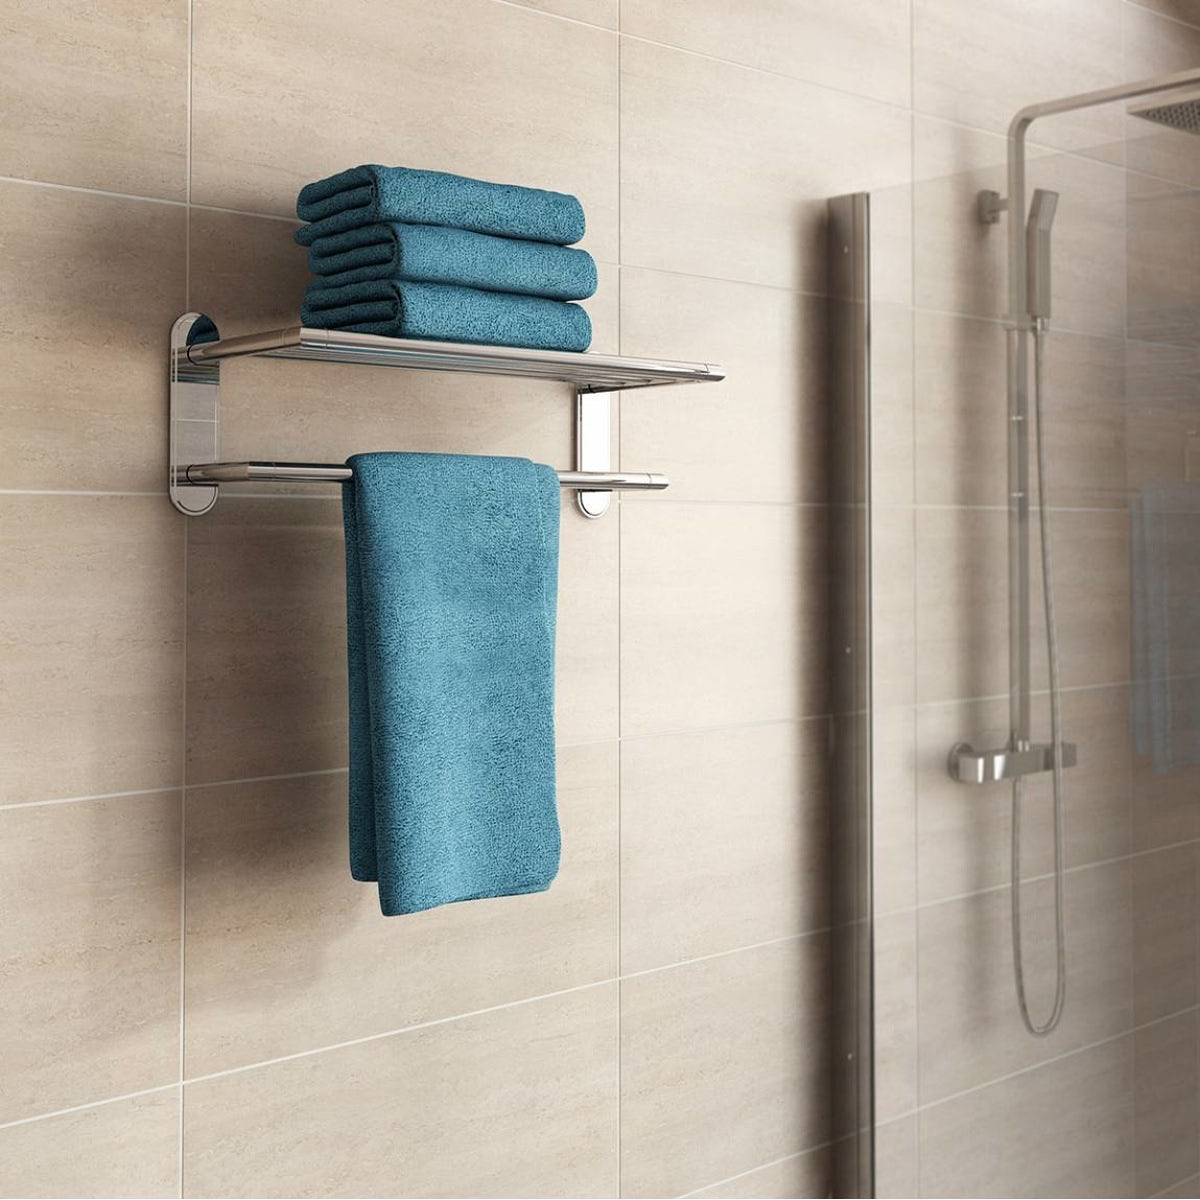 Accents Options contemporary towel shelf